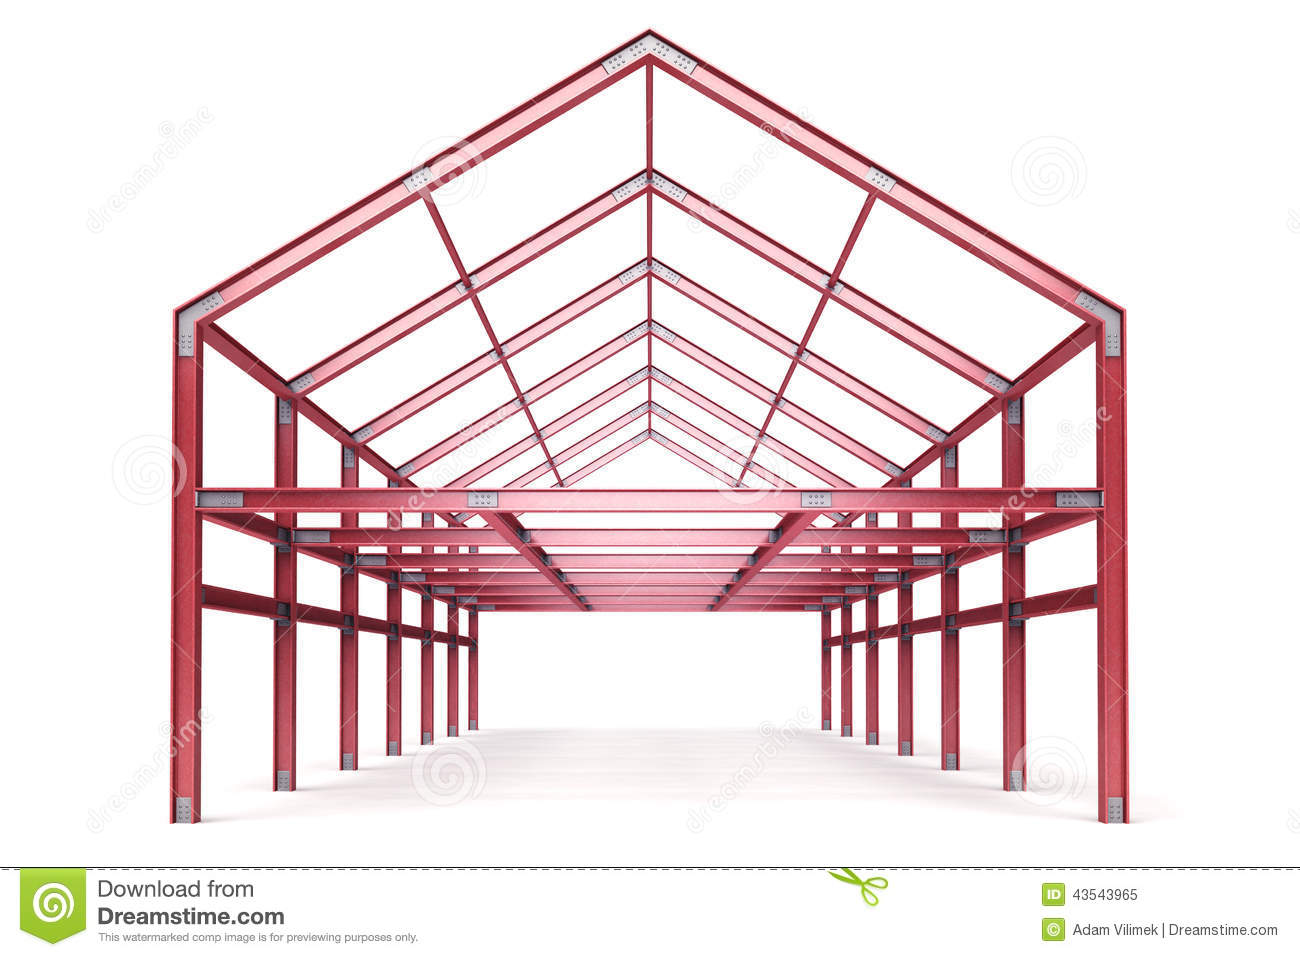 Red Steel Framework Building Front Perspective View Stock.